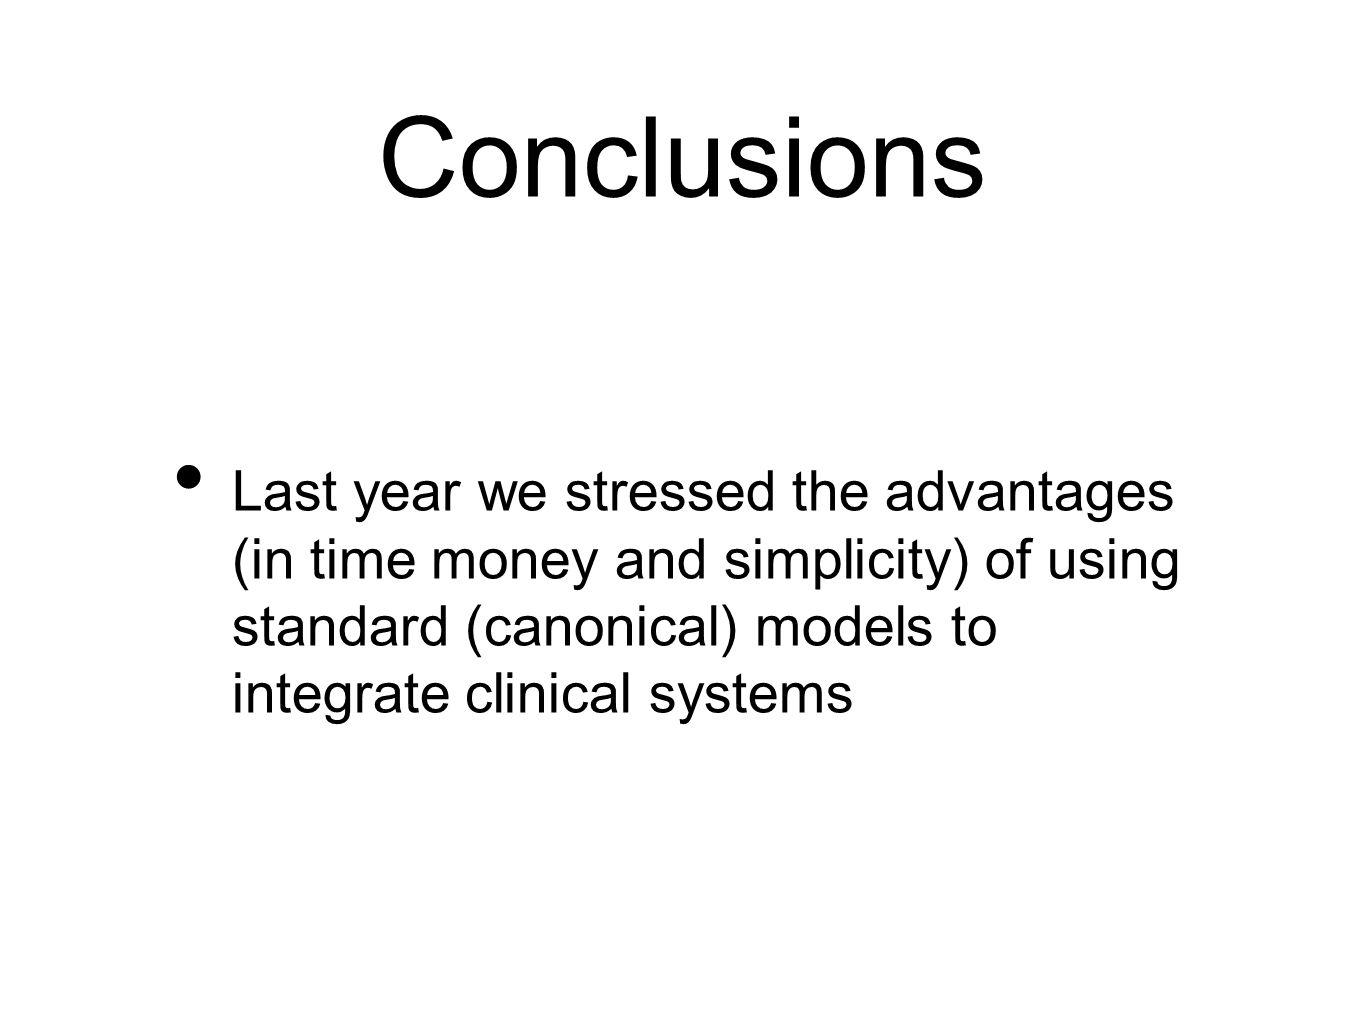 Conclusions Last year we stressed the advantages (in time money and simplicity) of using standard (canonical) models to integrate clinical systems.